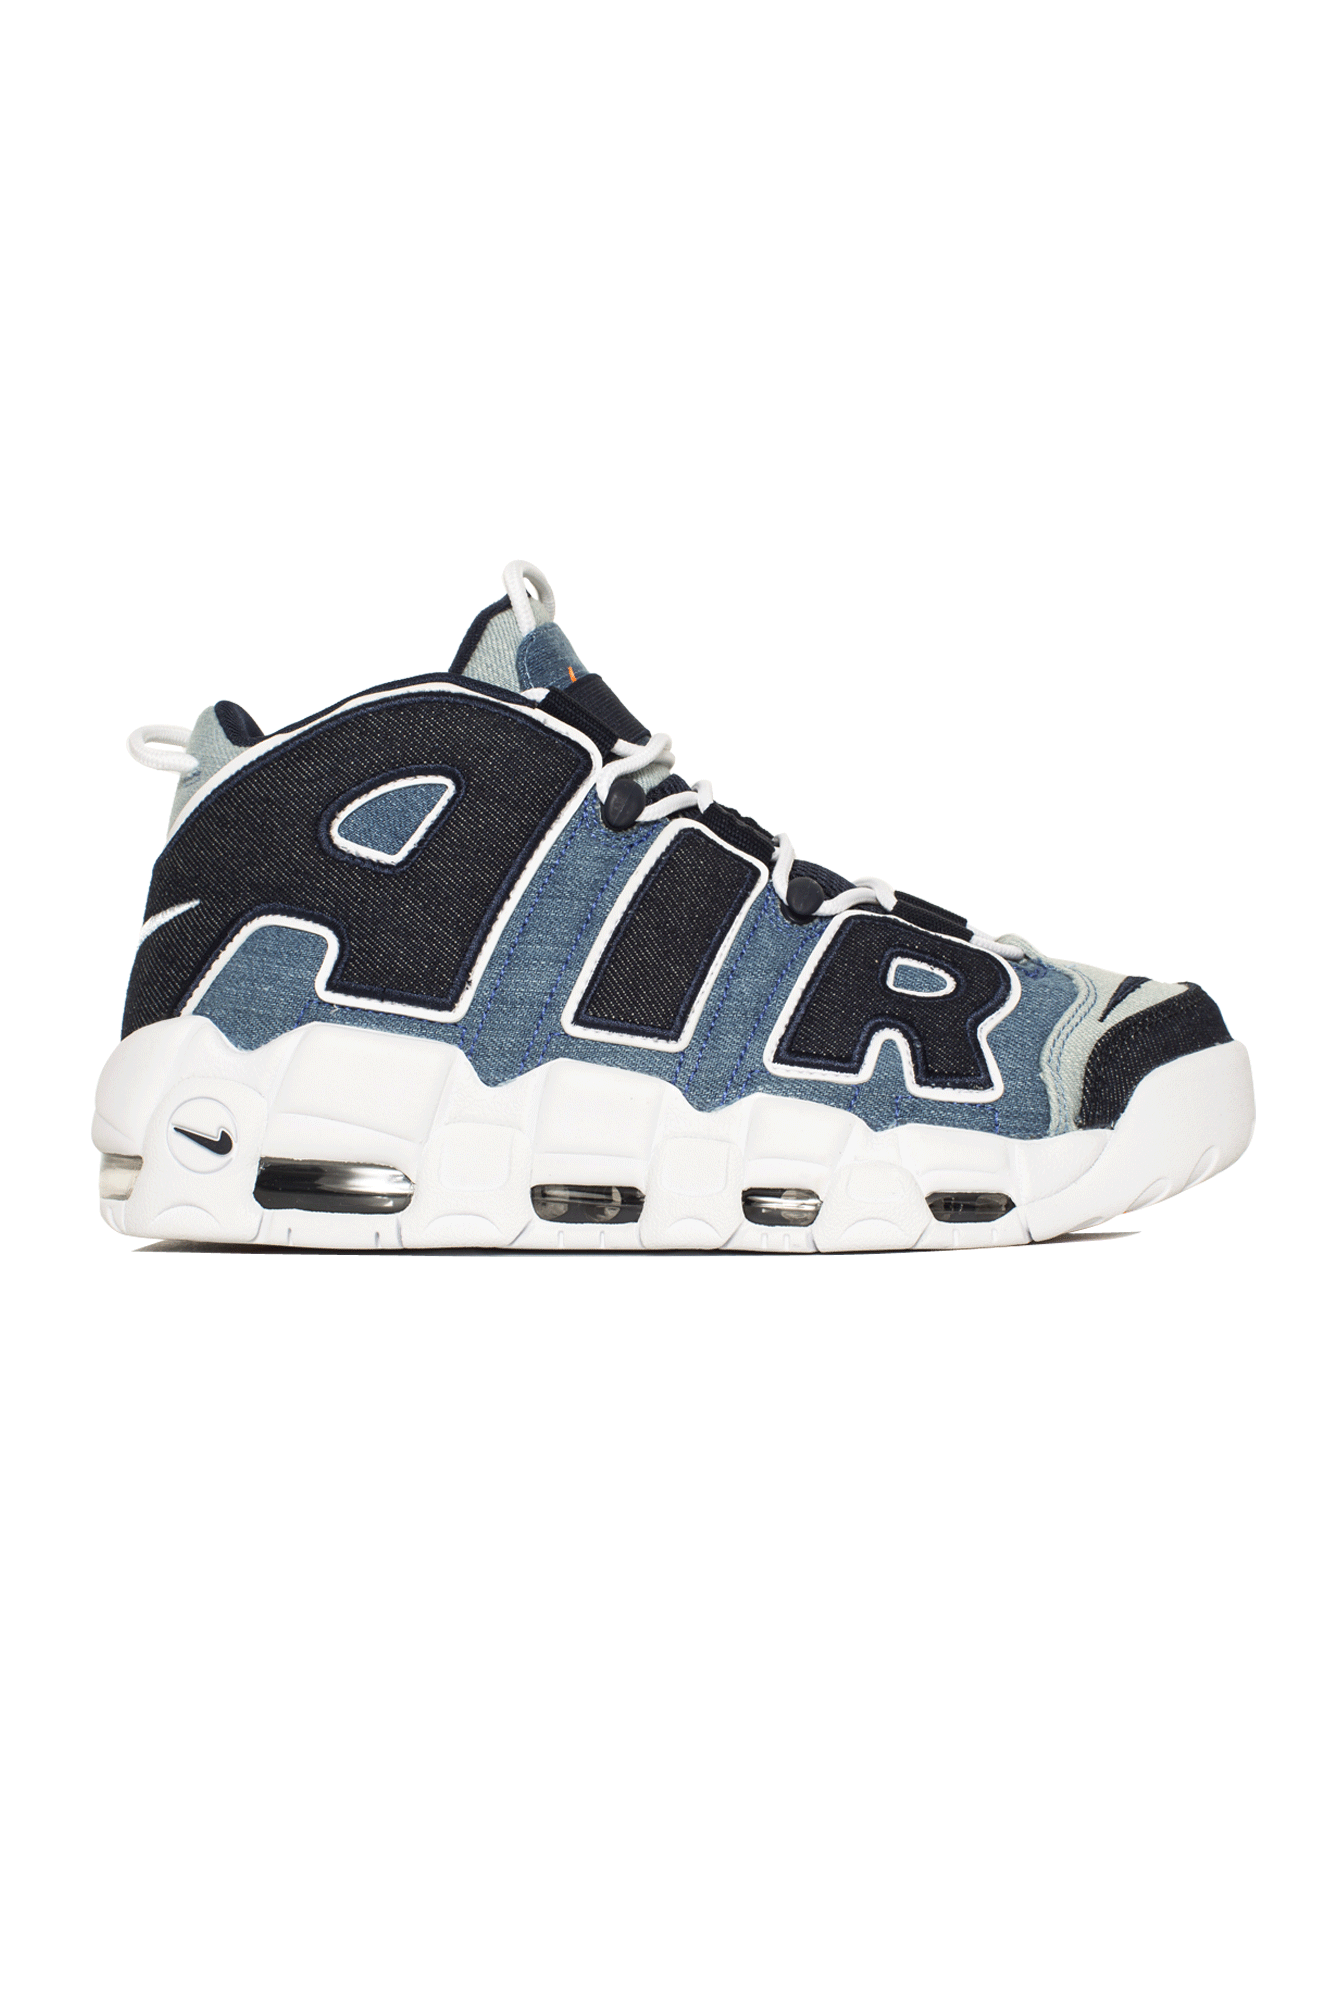 Nike Sneakers AIR MORE UPTEMPO '96 QS White CJ6125-#000#100#6 - One Block Down